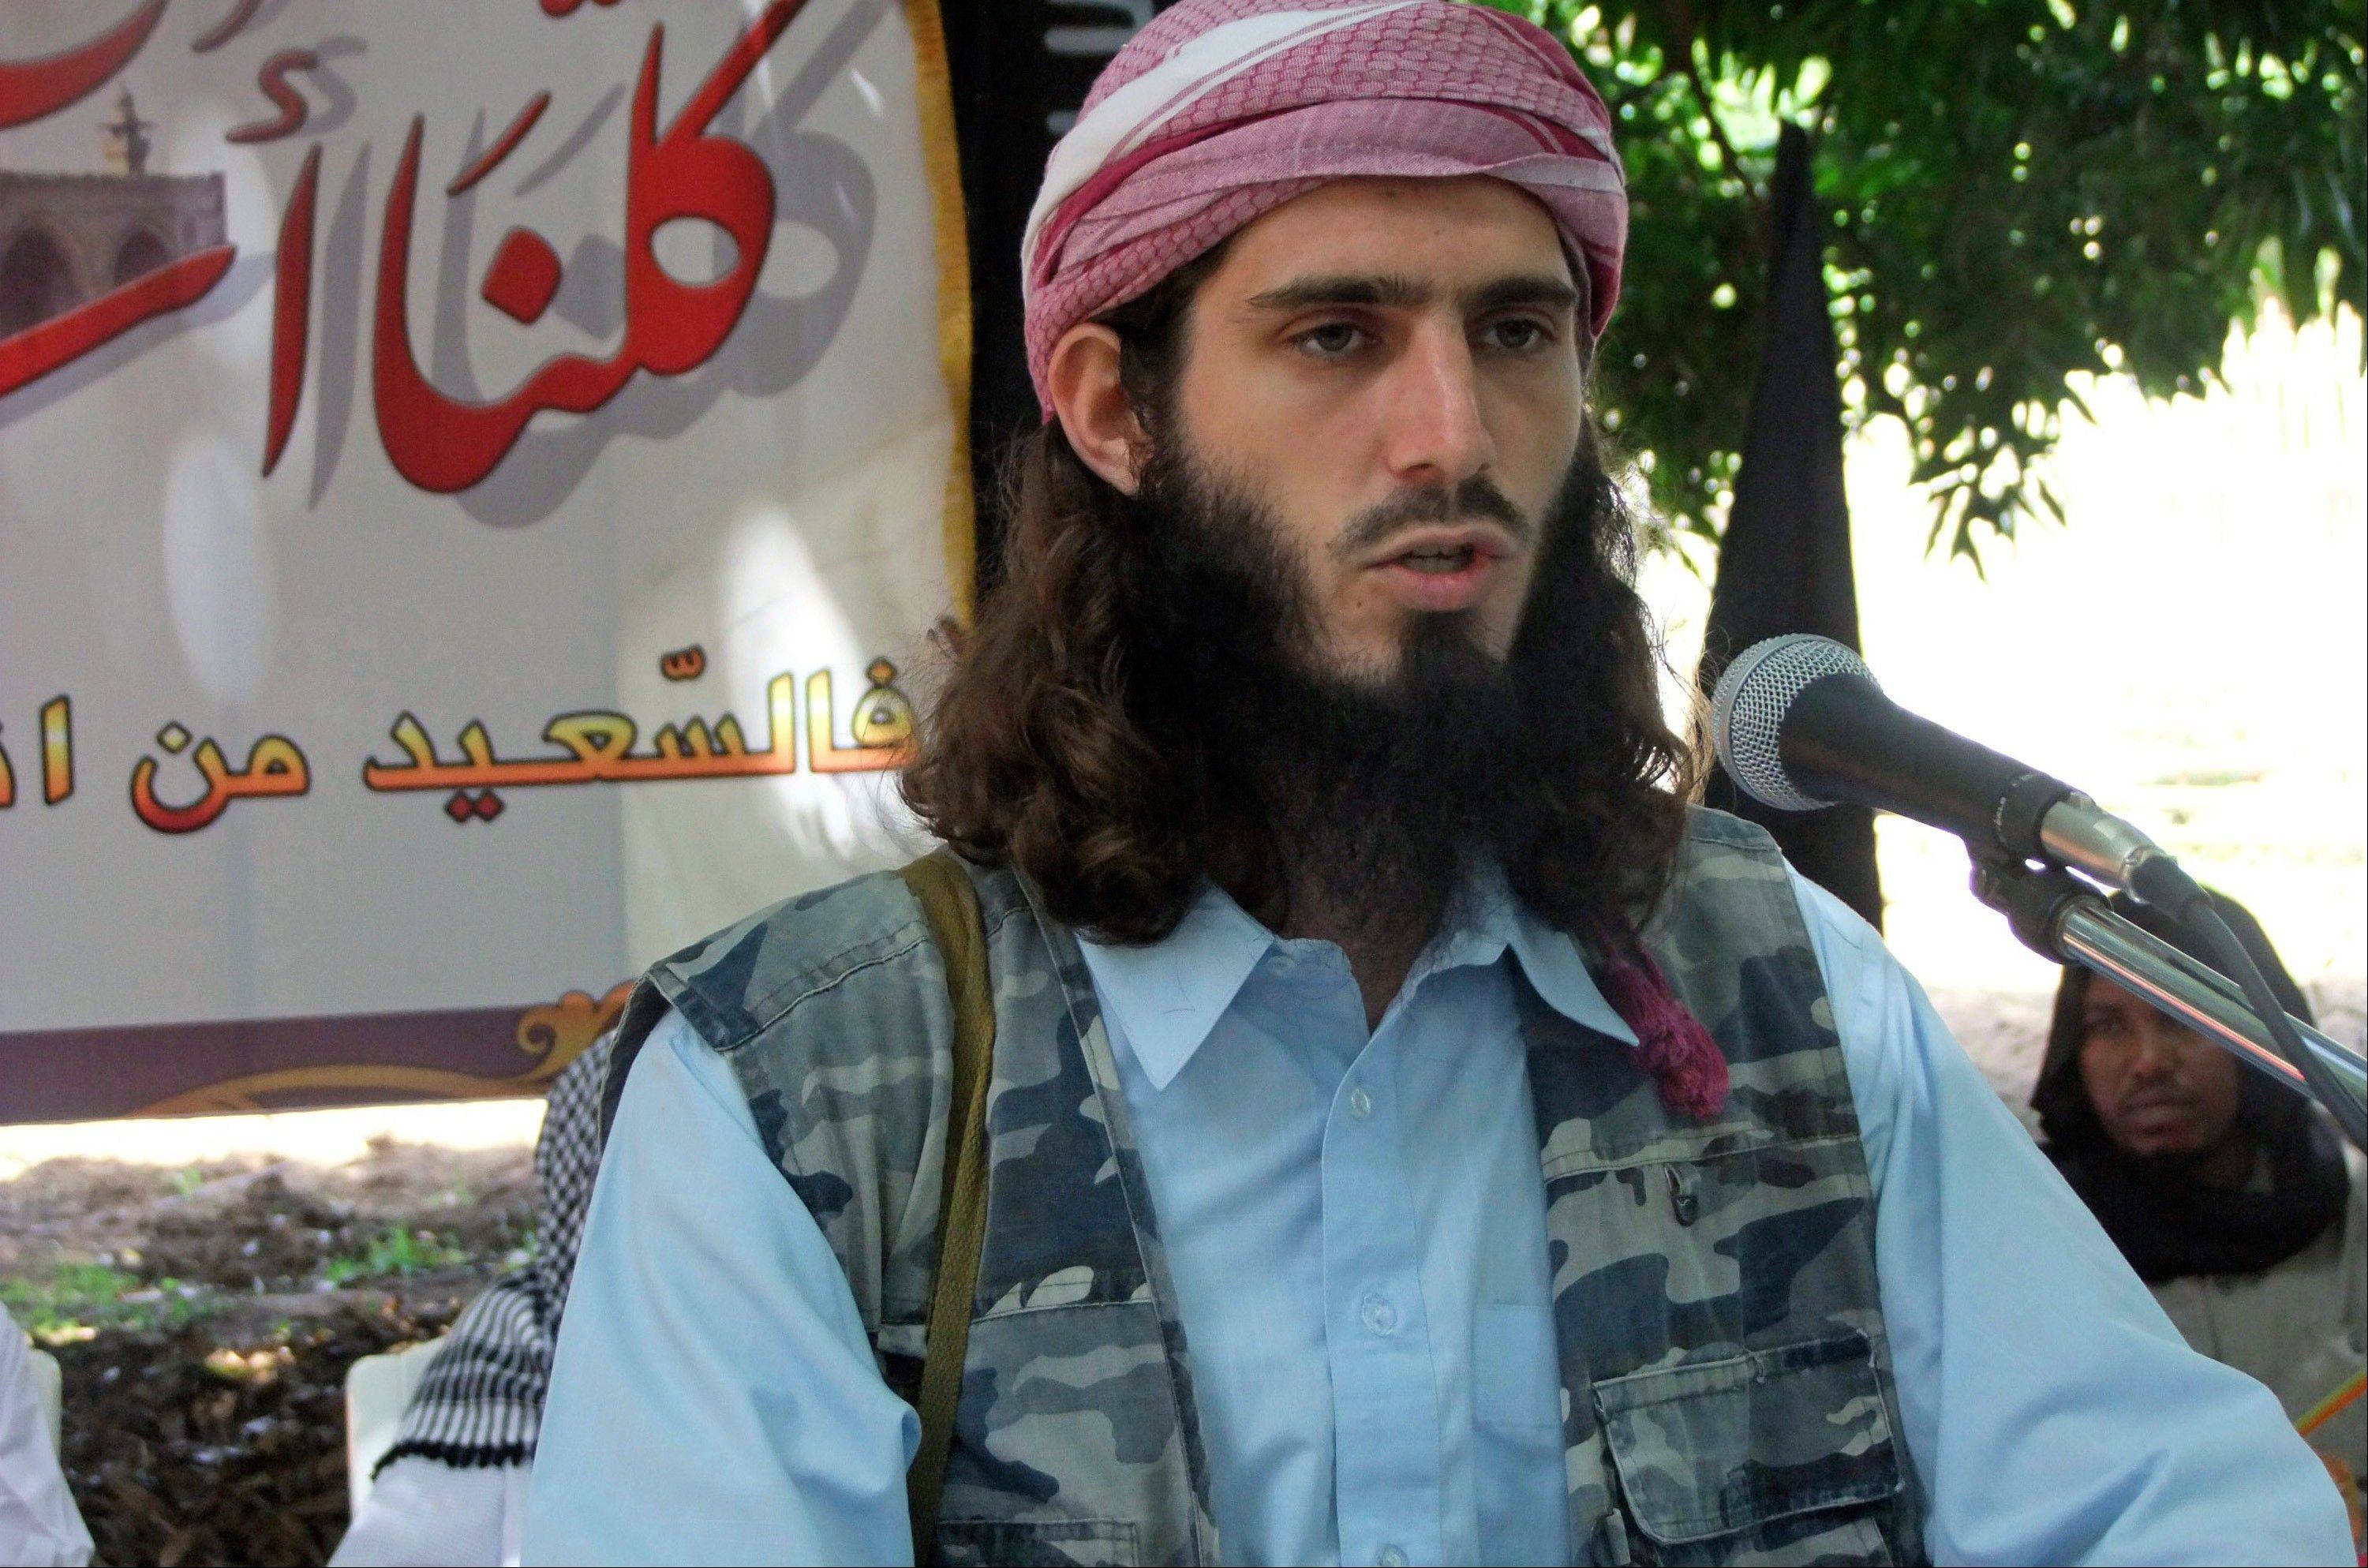 Omar Hammami, a jihadi from Alabama who ascended the ranks of Somalia's al-Qaida-linked militant group al-Shabab high enough to attract a $5 million U.S. government bounty, was killed Thursday, Sept. 12, 2013 in an ambush ordered by the militant group's leader, militants said.